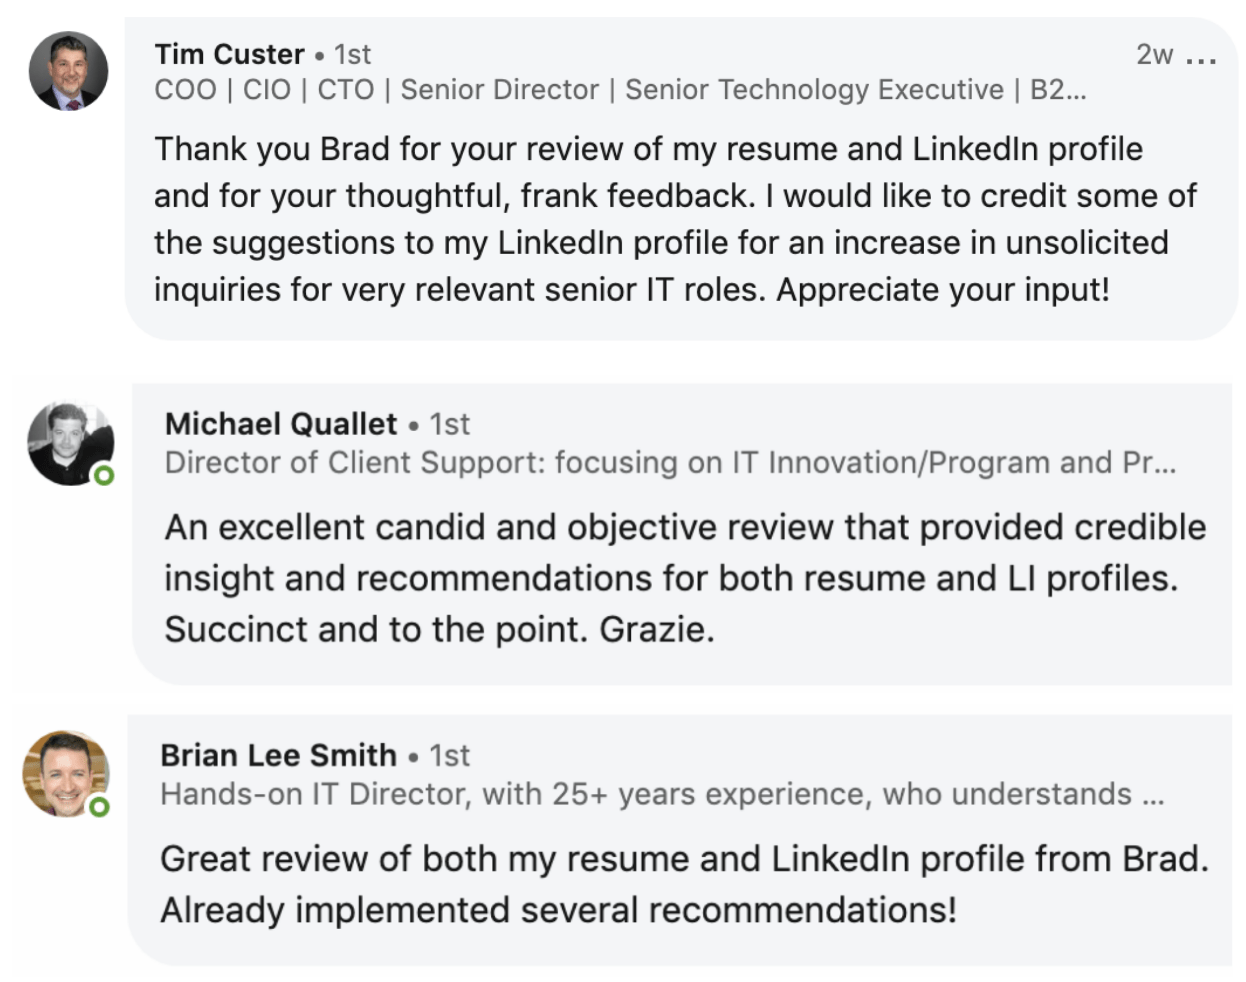 Resume-LinkedIn-Review-Compliments-of-IT-Pros